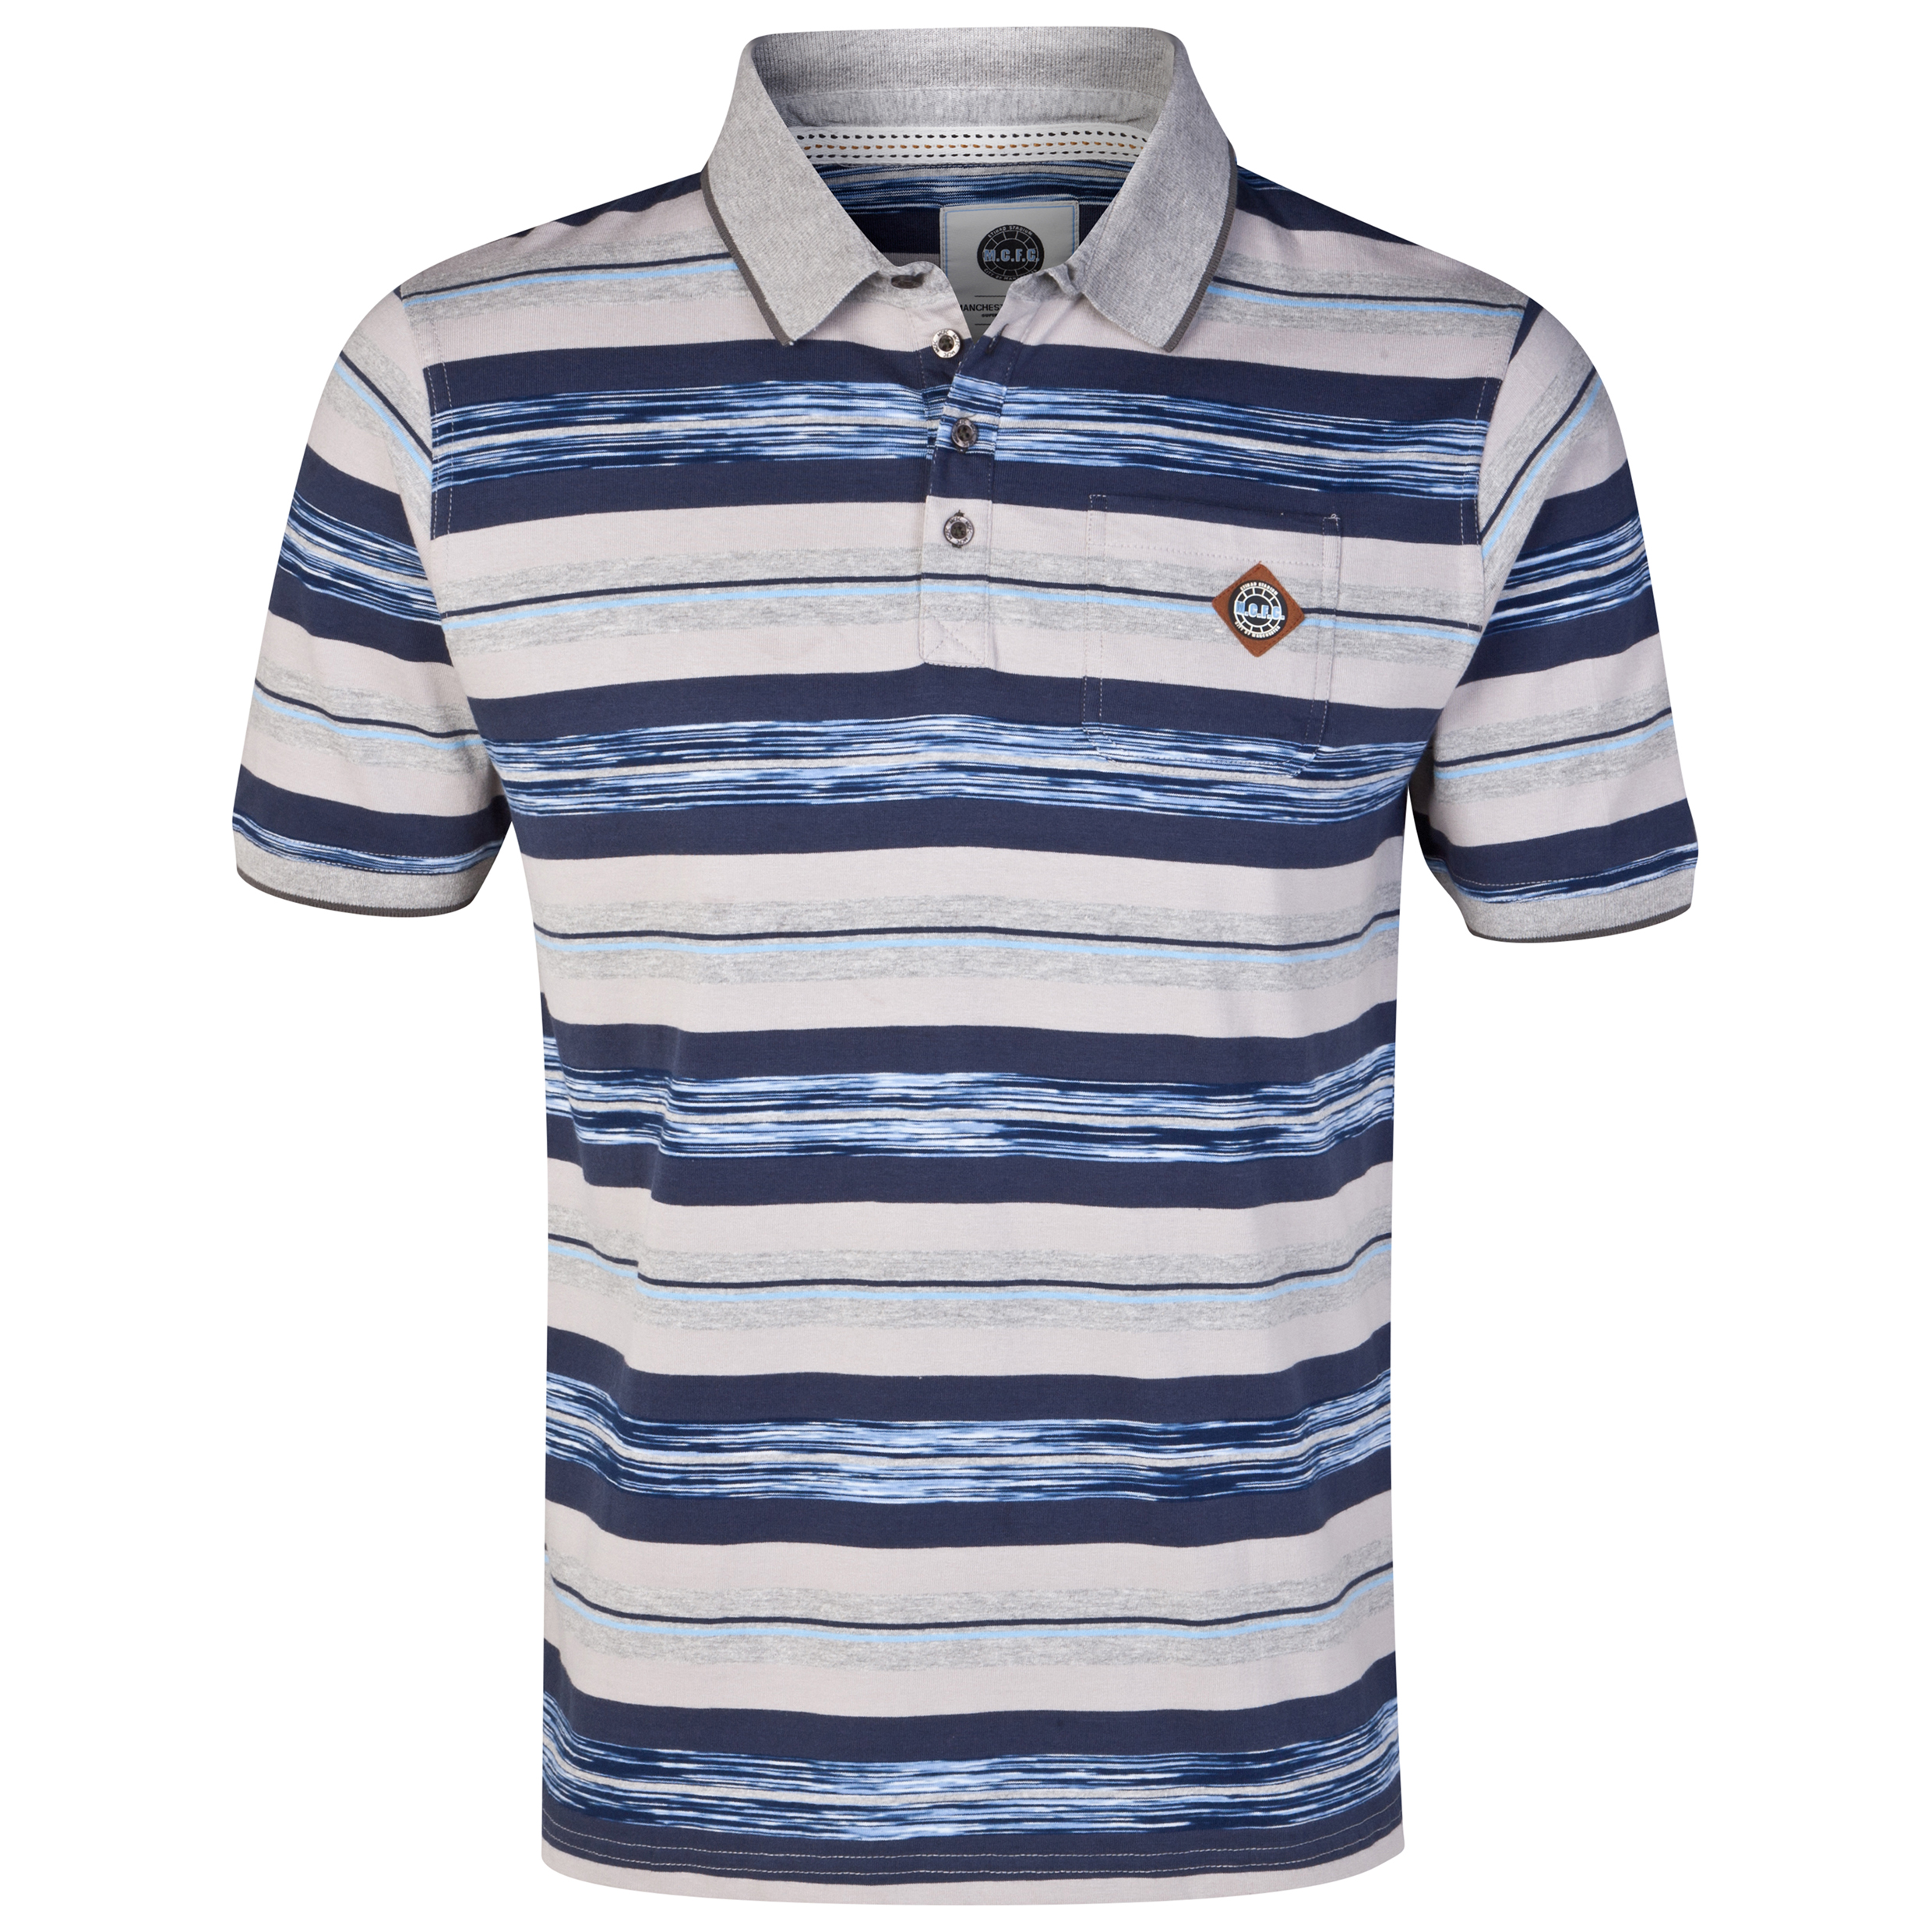 Manchester City Stripe Polo Shirt - Grey/Navy/Blue - Mens